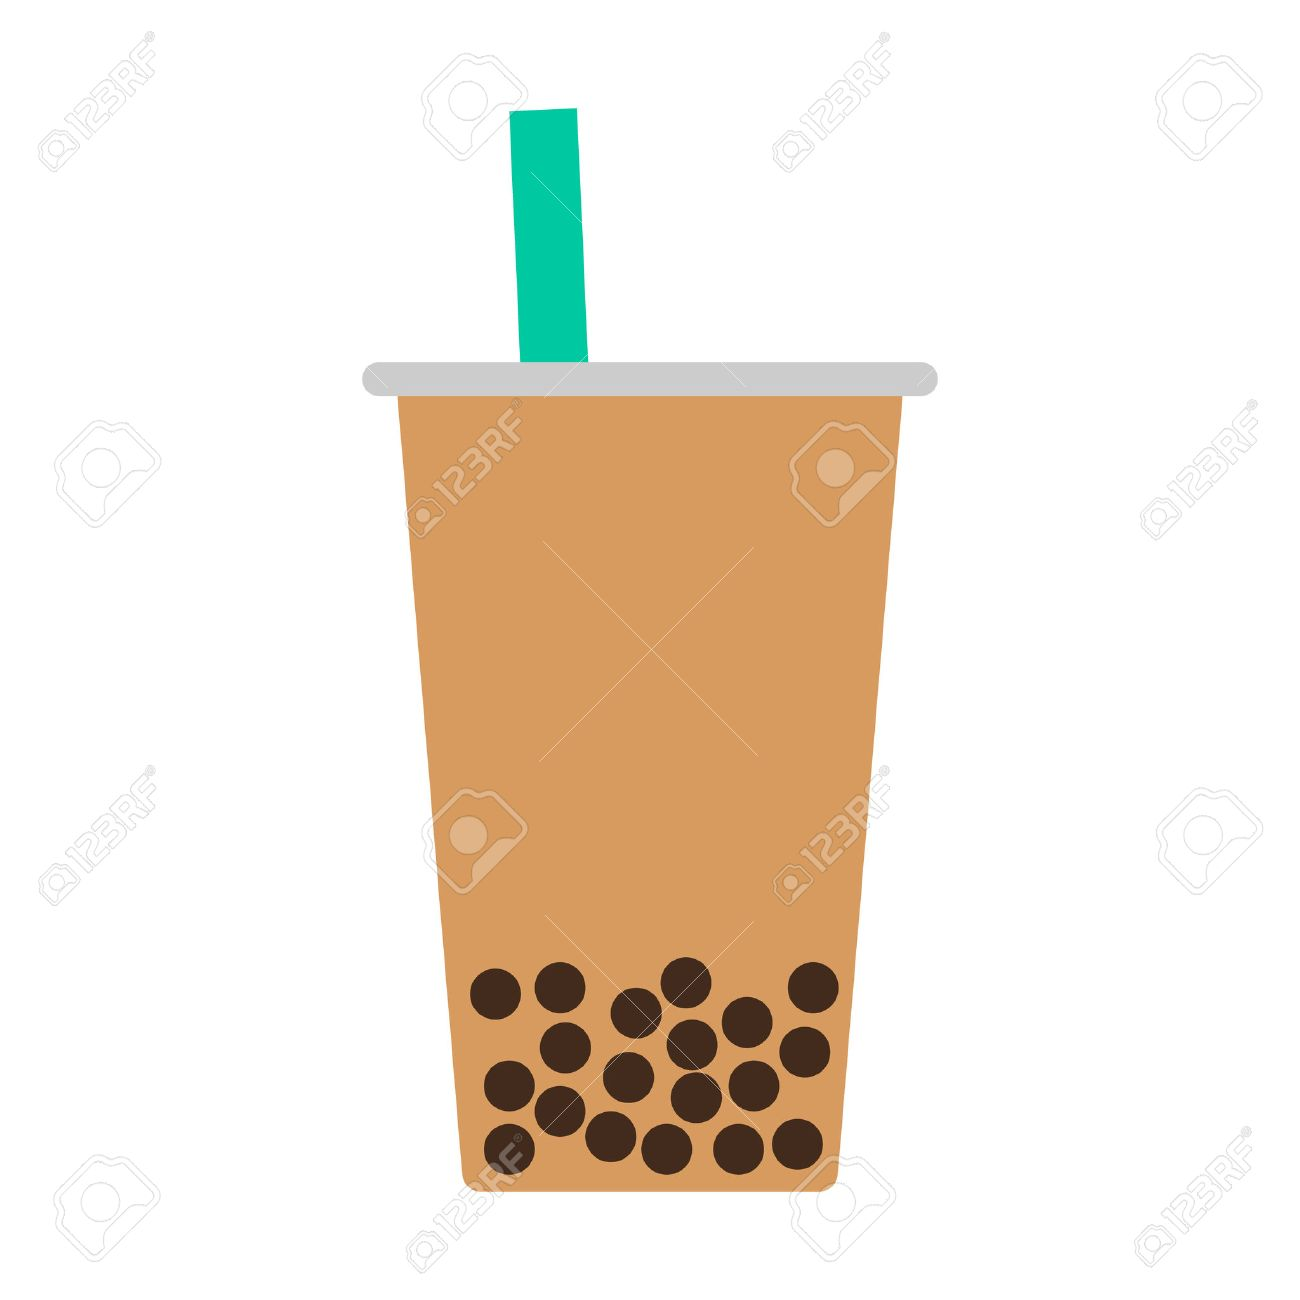 Bubble tea boba pearl milk tea flat color icon for food apps and websites - 50763091